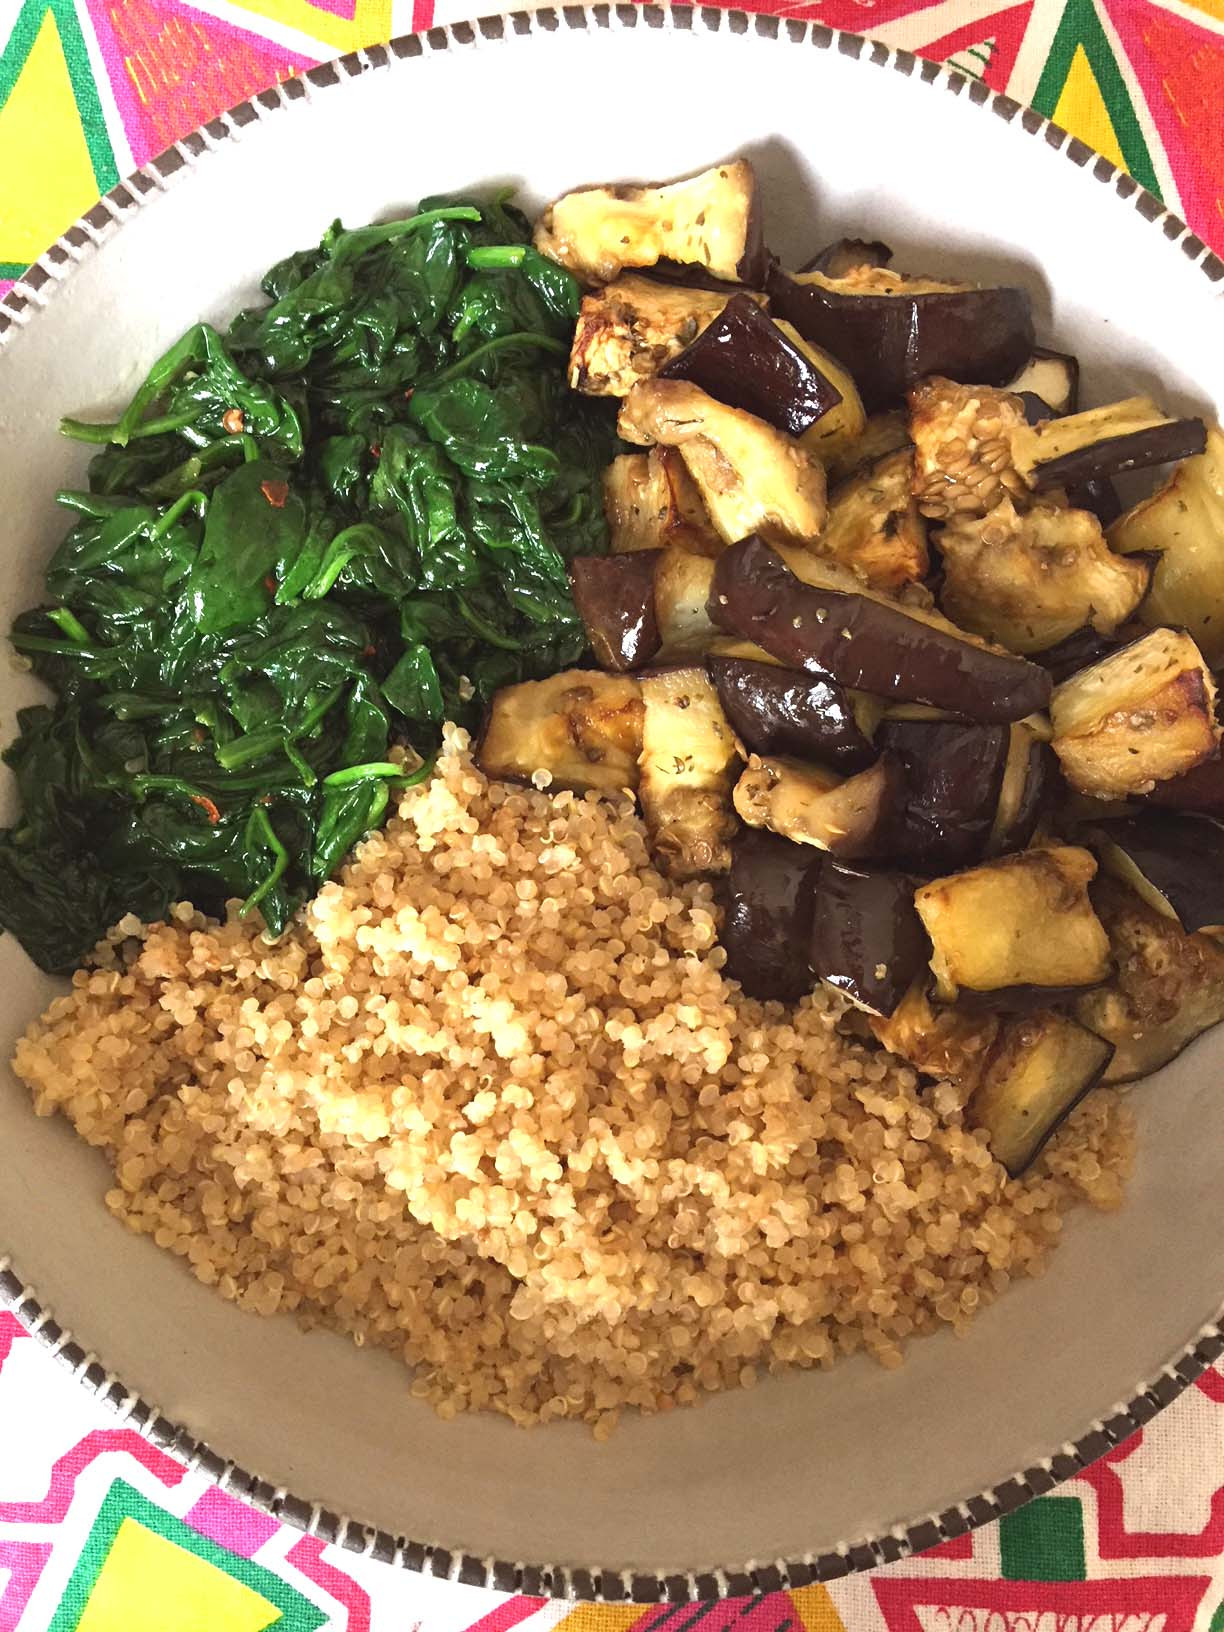 Healthy Vegan Eggplant Recipes  Vegan Quinoa Buddha Bowl With Eggplant And Spinach